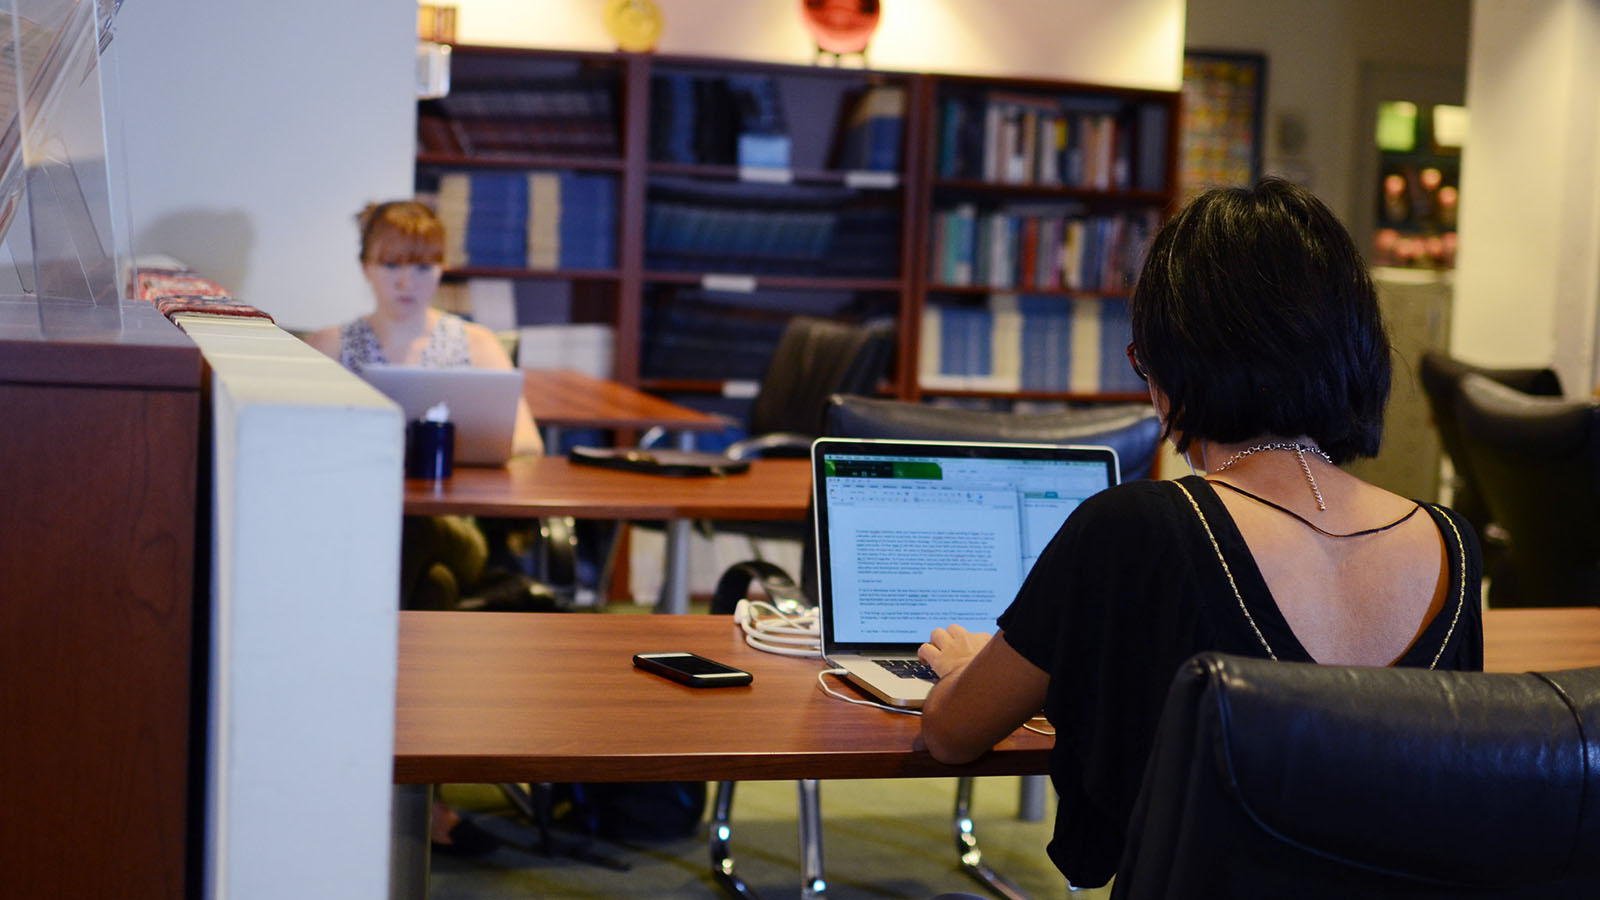 Research assistants work on computers at the Berkley Center